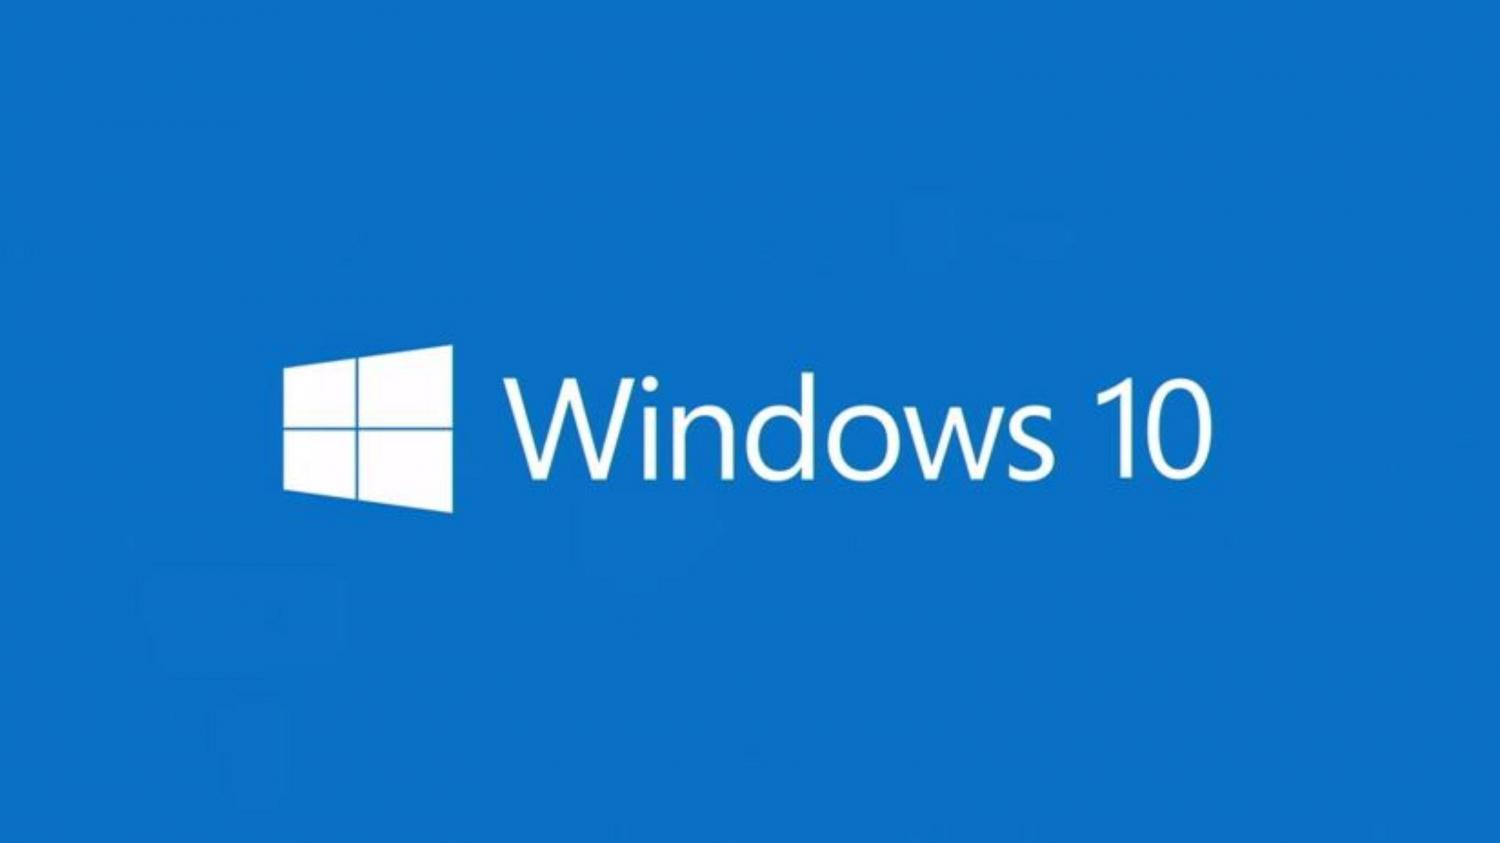 Windows insiders are told of new tool for squeaky clean for Windows 10 site